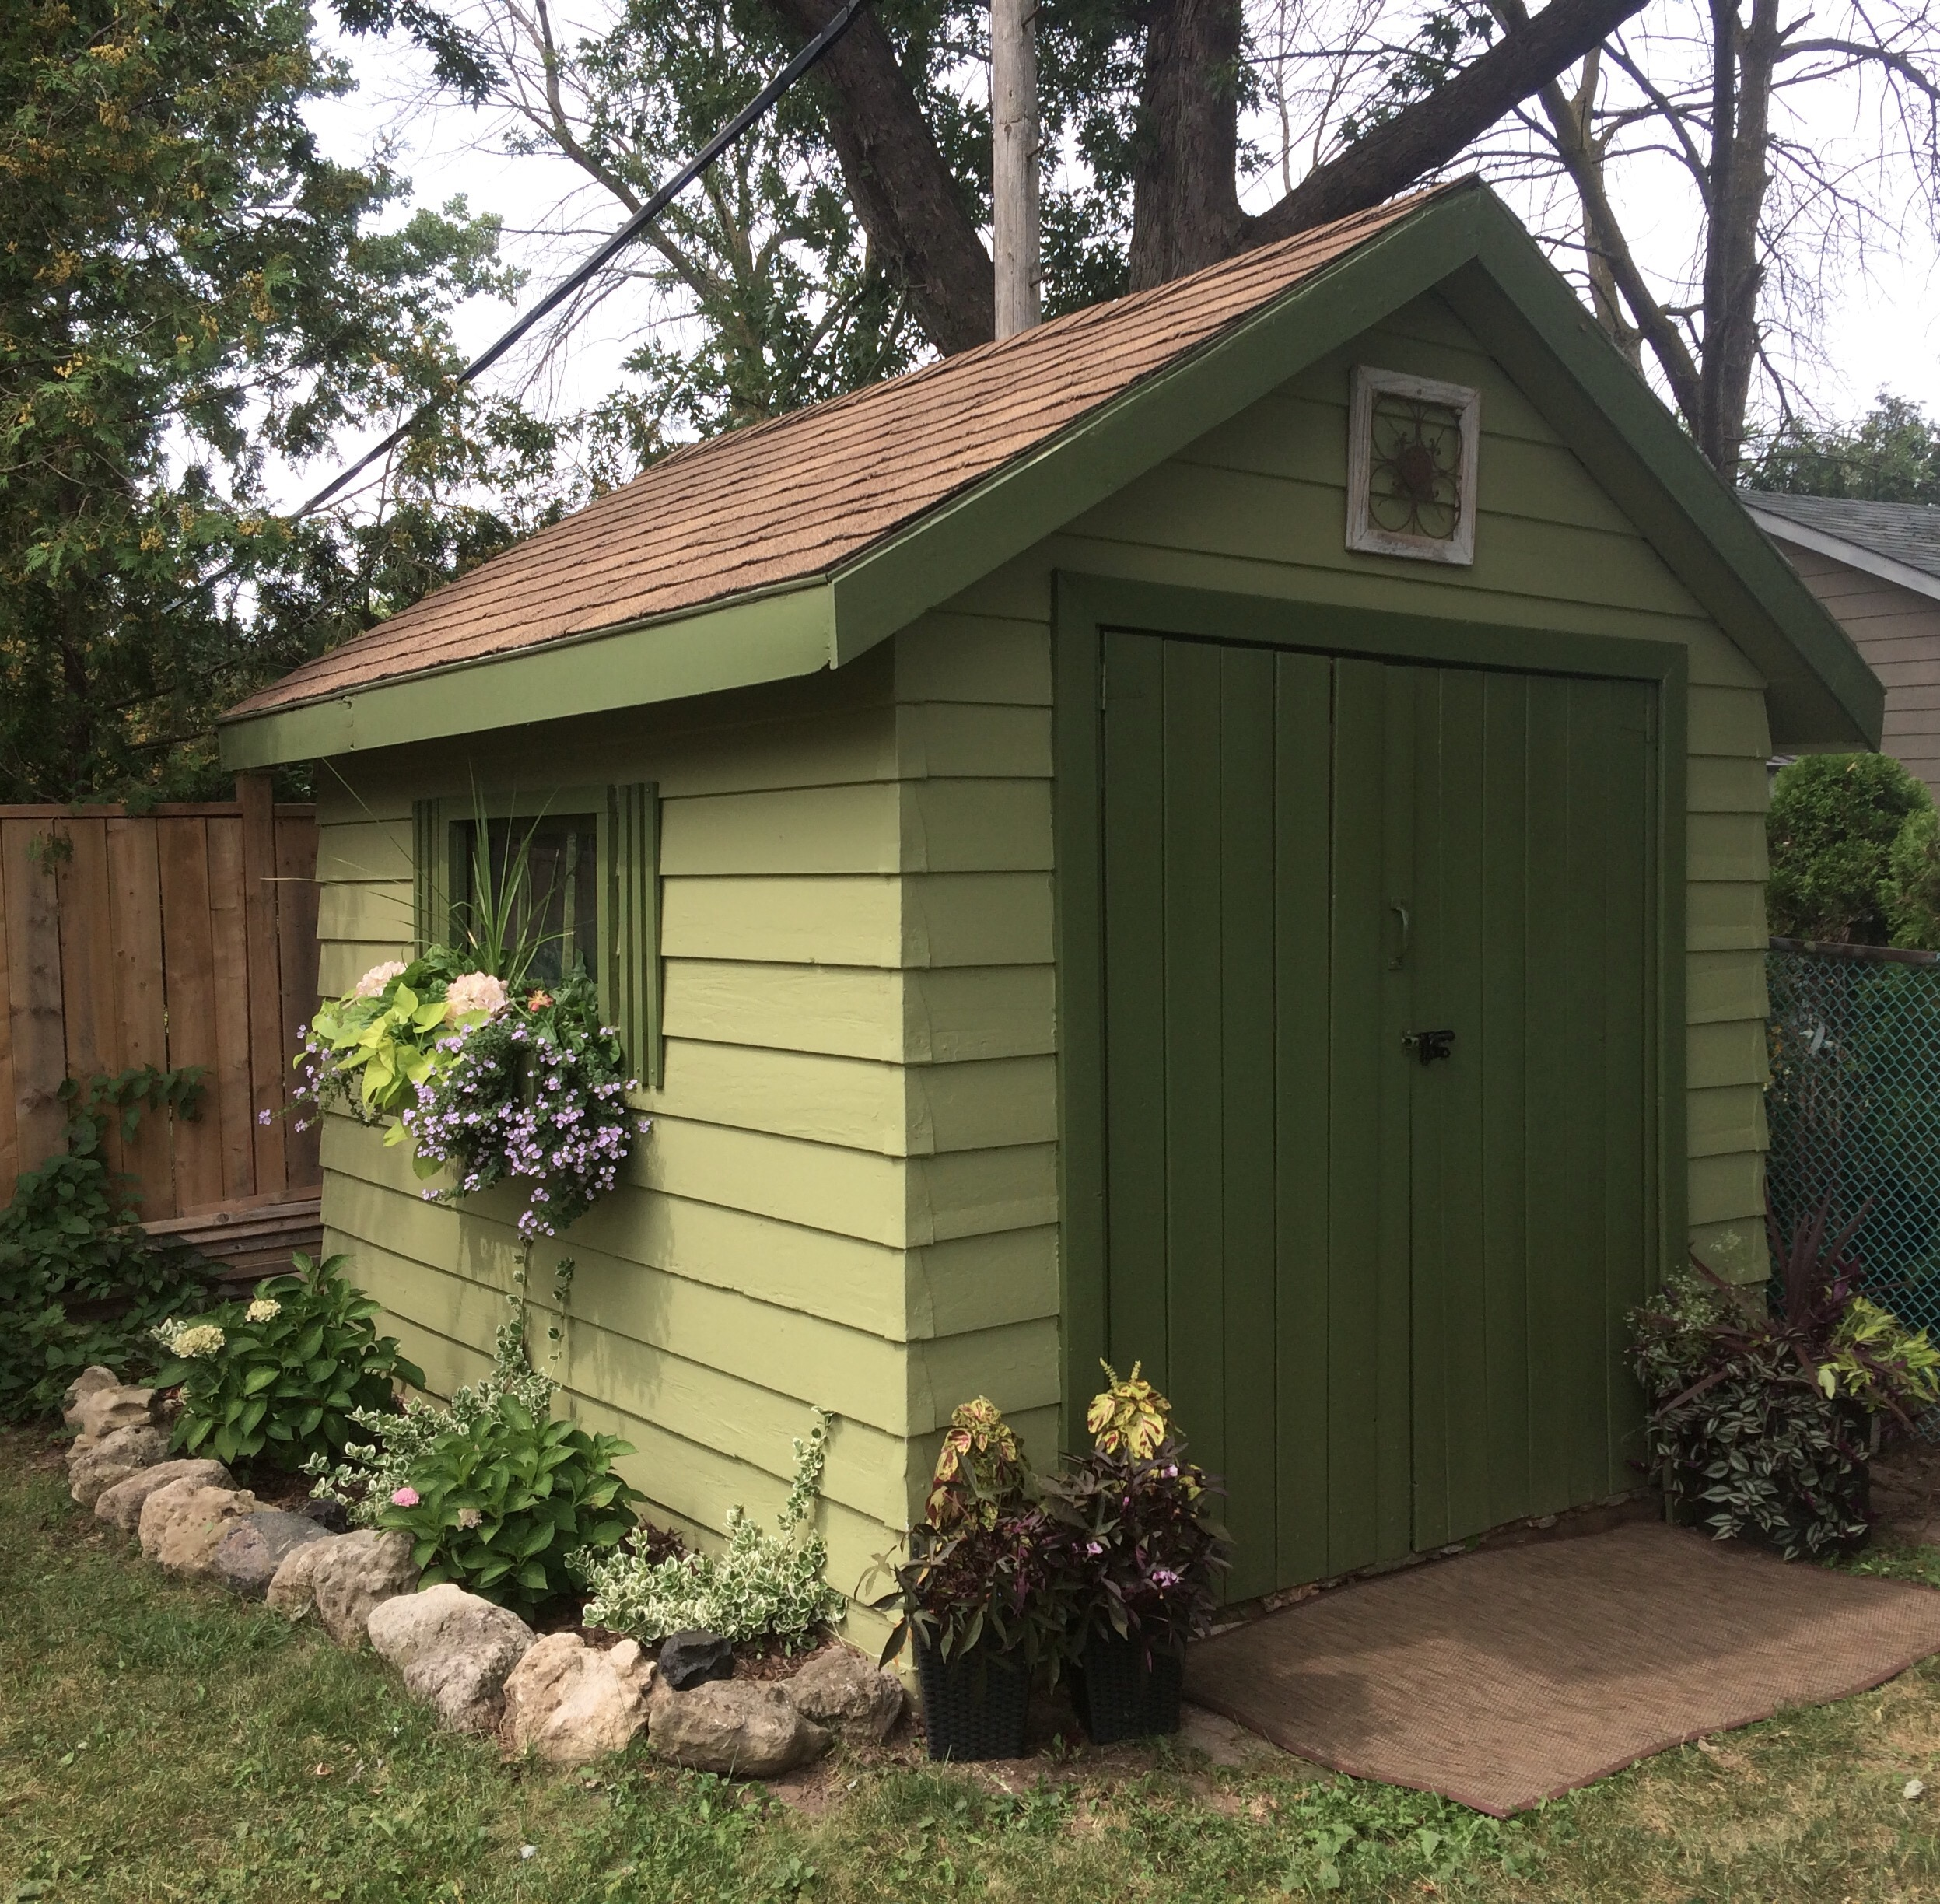 en in outdoors storage taupe structures depot sheds brown shed home and the backyard canada categories p outdoor